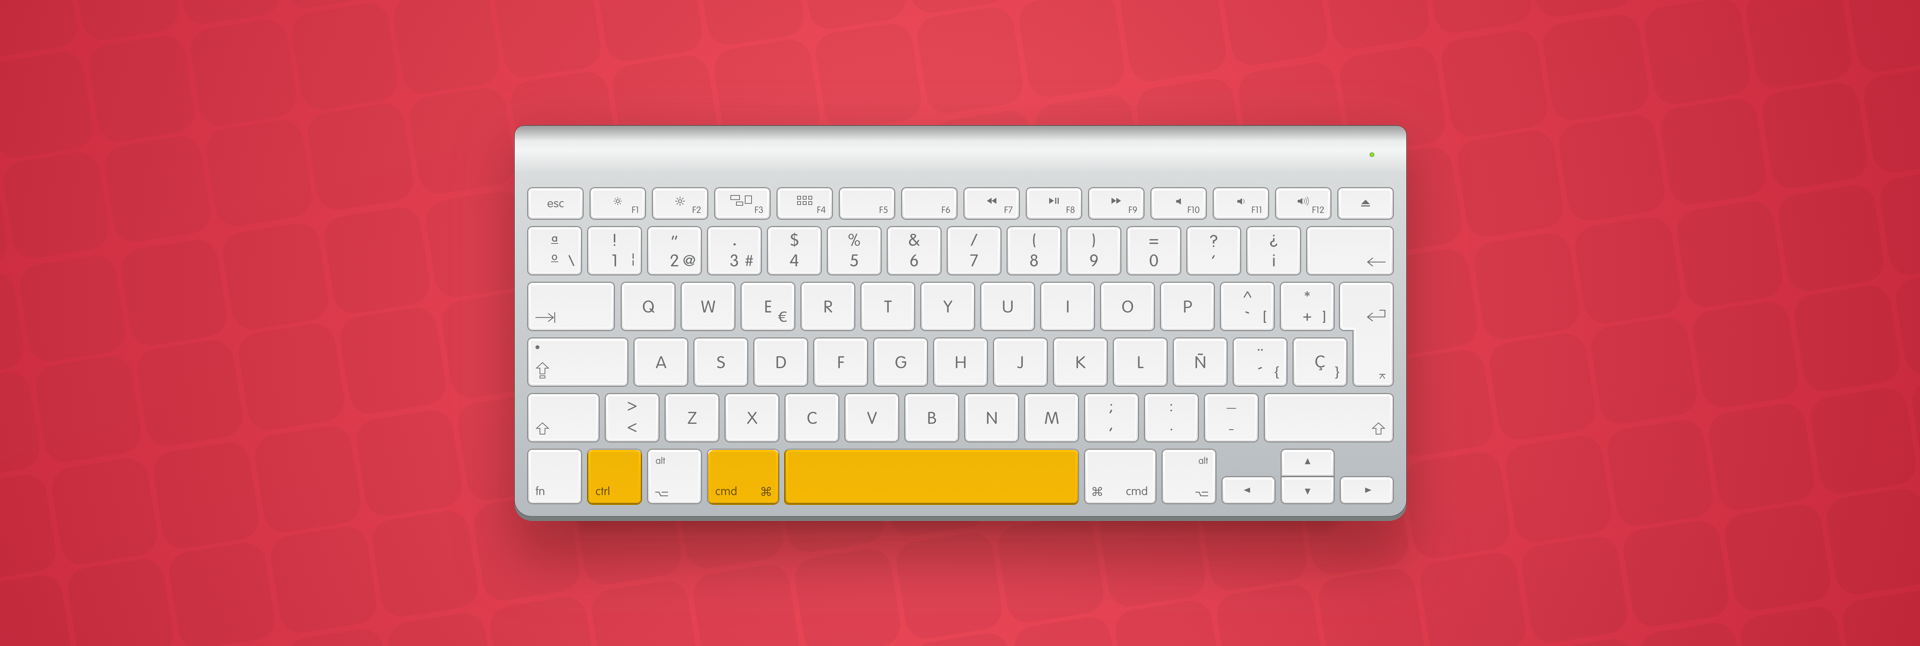 How to customize Mac keyboard shortcuts to work faster